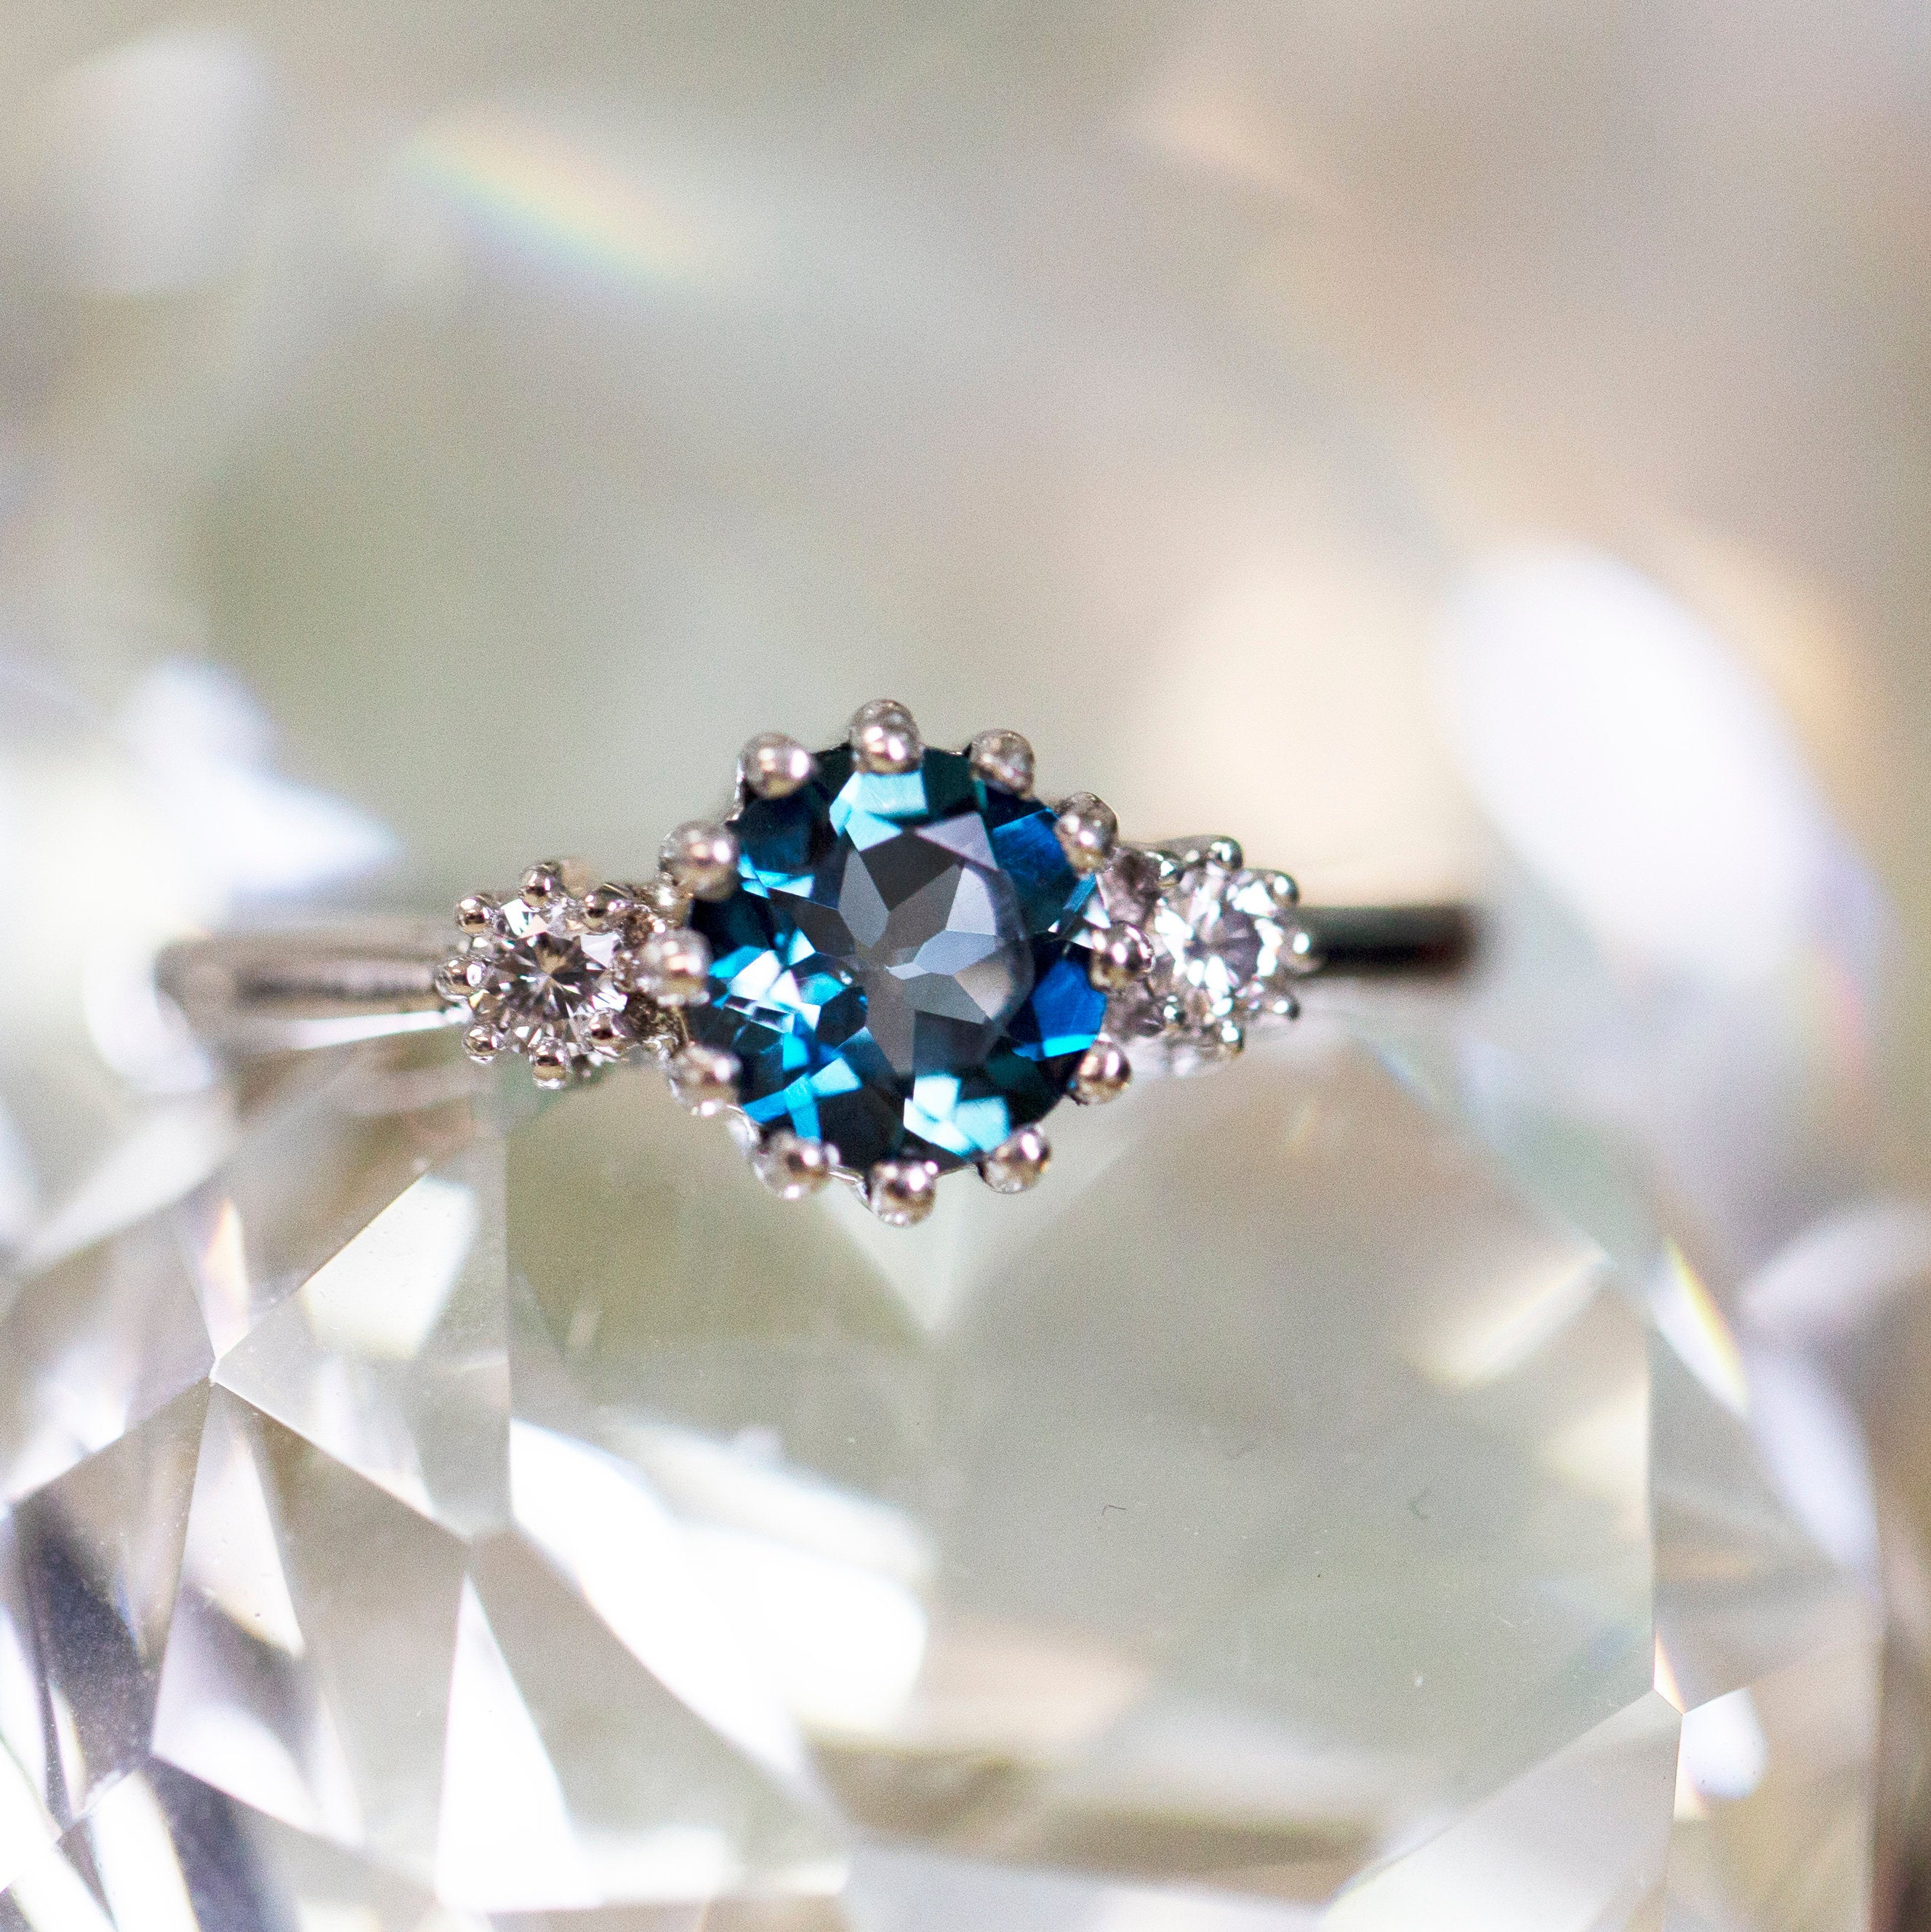 London Blue Topaz And Diamond Ring In 14k White Gold, Crown Ring, Three Stone Ring, November Birthstone, Blue Engagement Ring, Gift For Her Intended For 2017 Blue Sparkling Crown Rings (View 4 of 25)